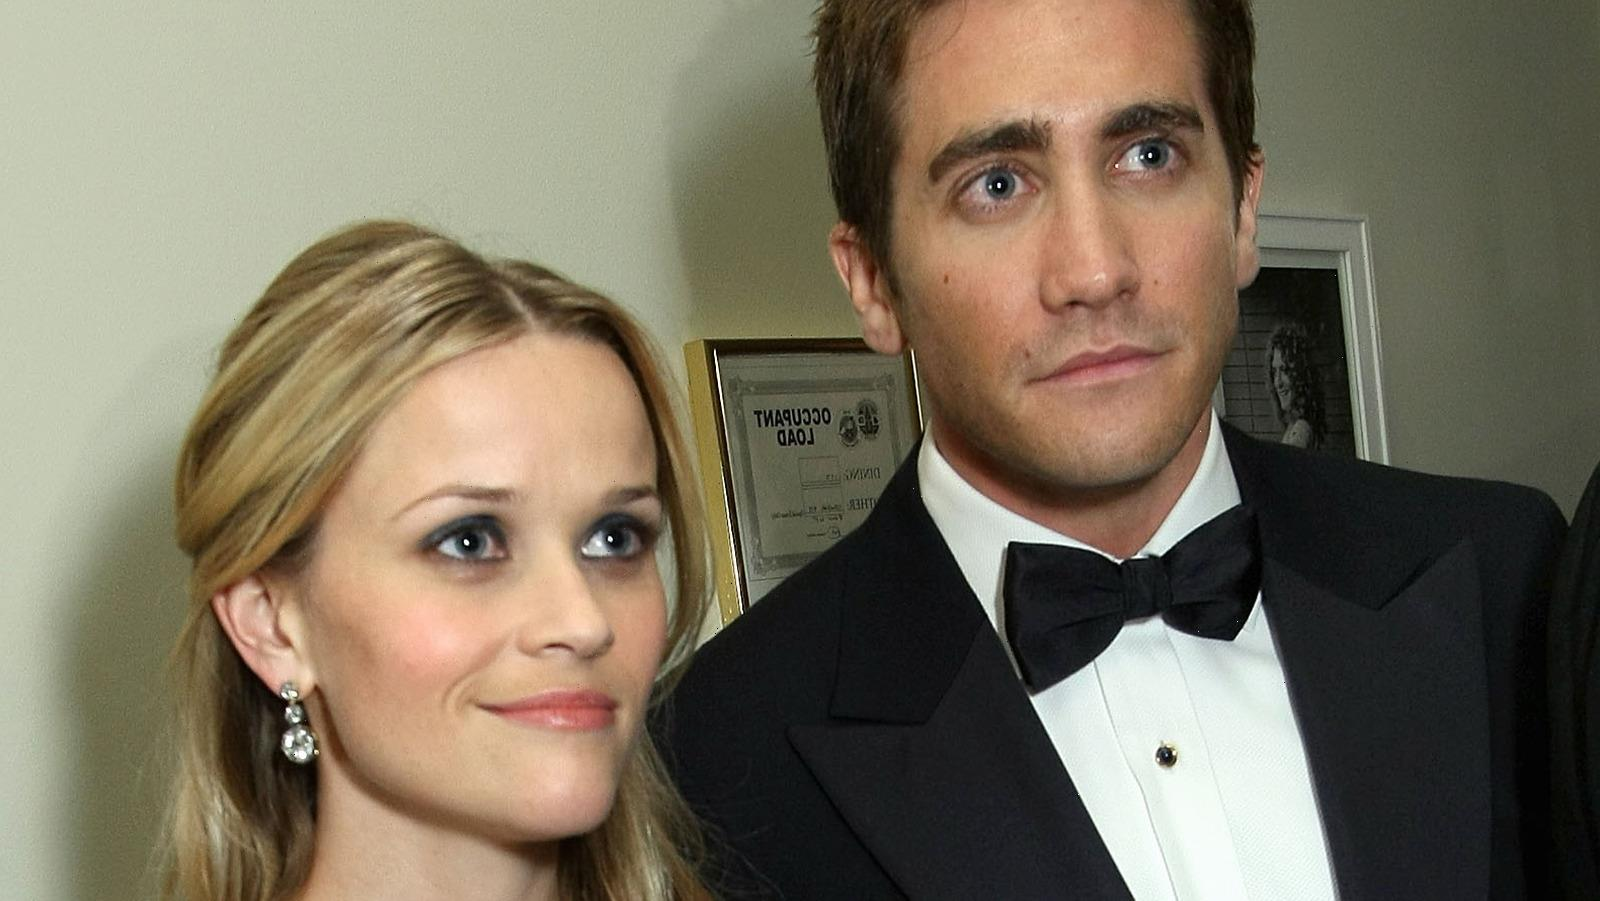 The Truth About Reese Witherspoon And Jake Gyllenhaals Relationship